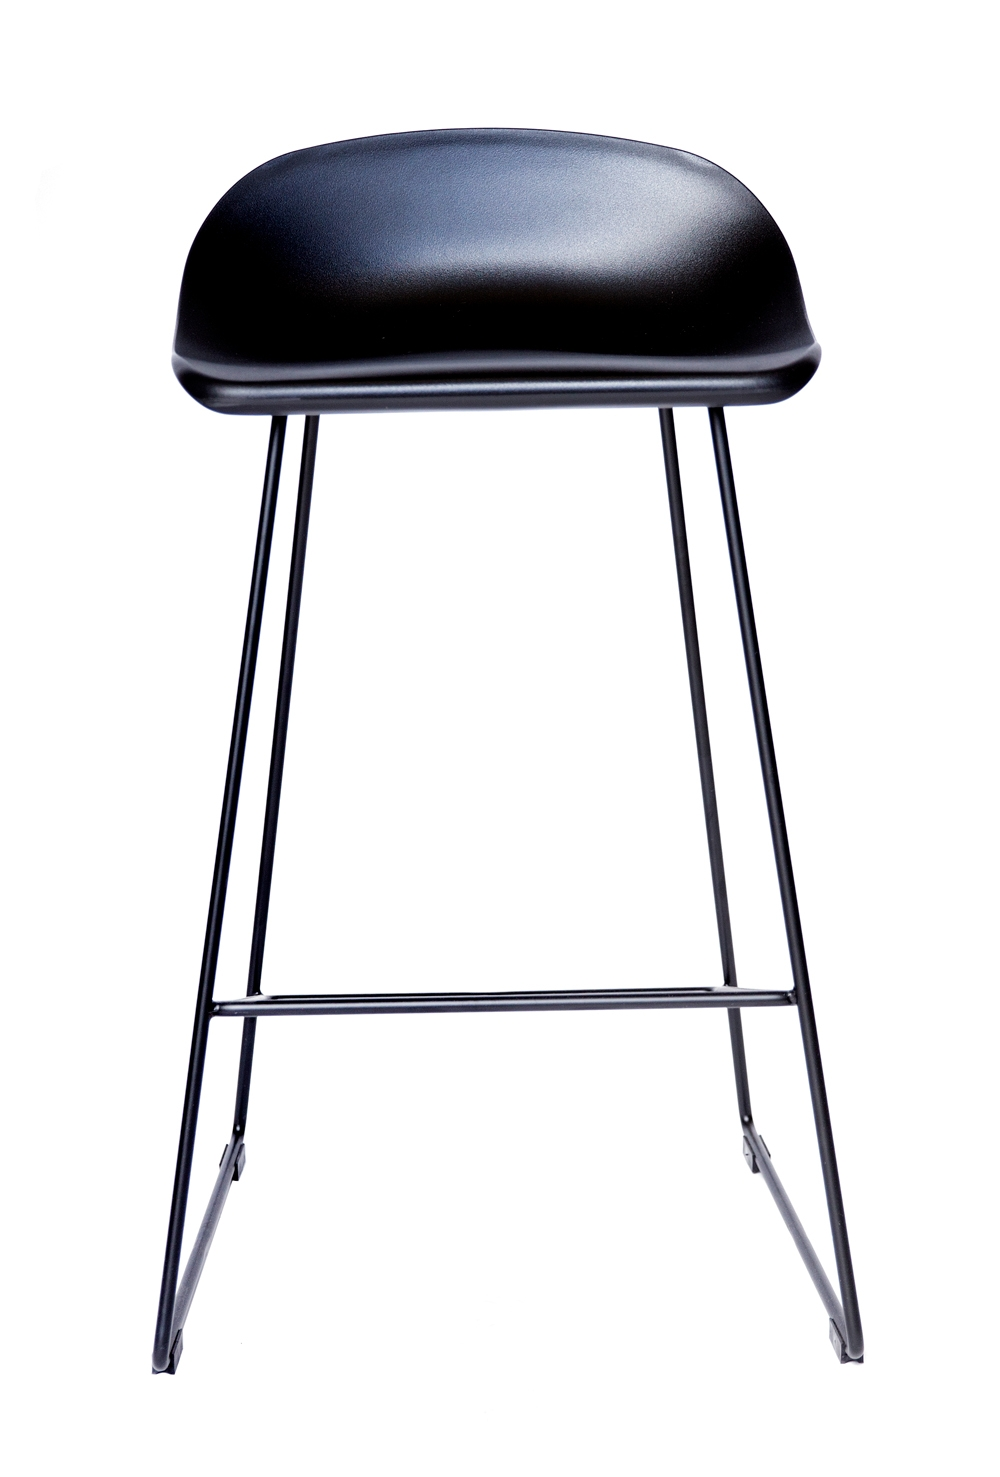 Replica Hee Welling Stool | Black